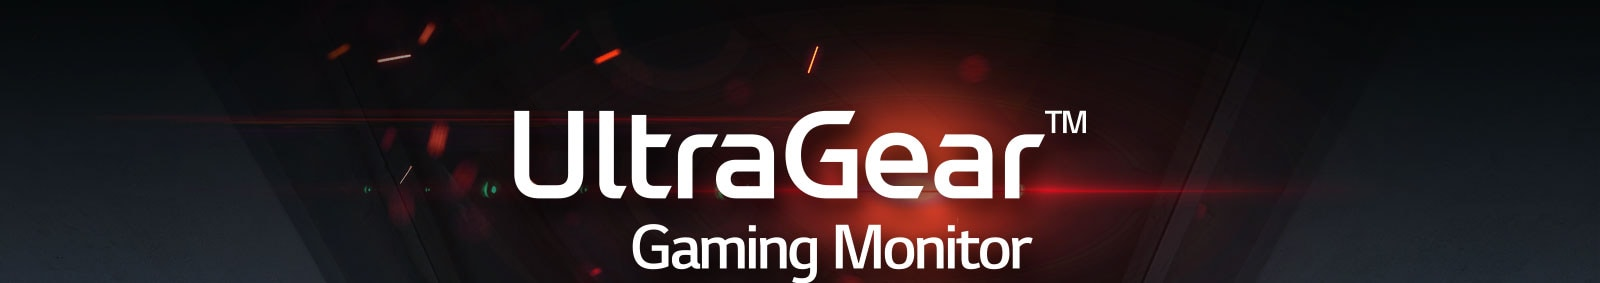 Image of 27GN750-B monitor with game graphic